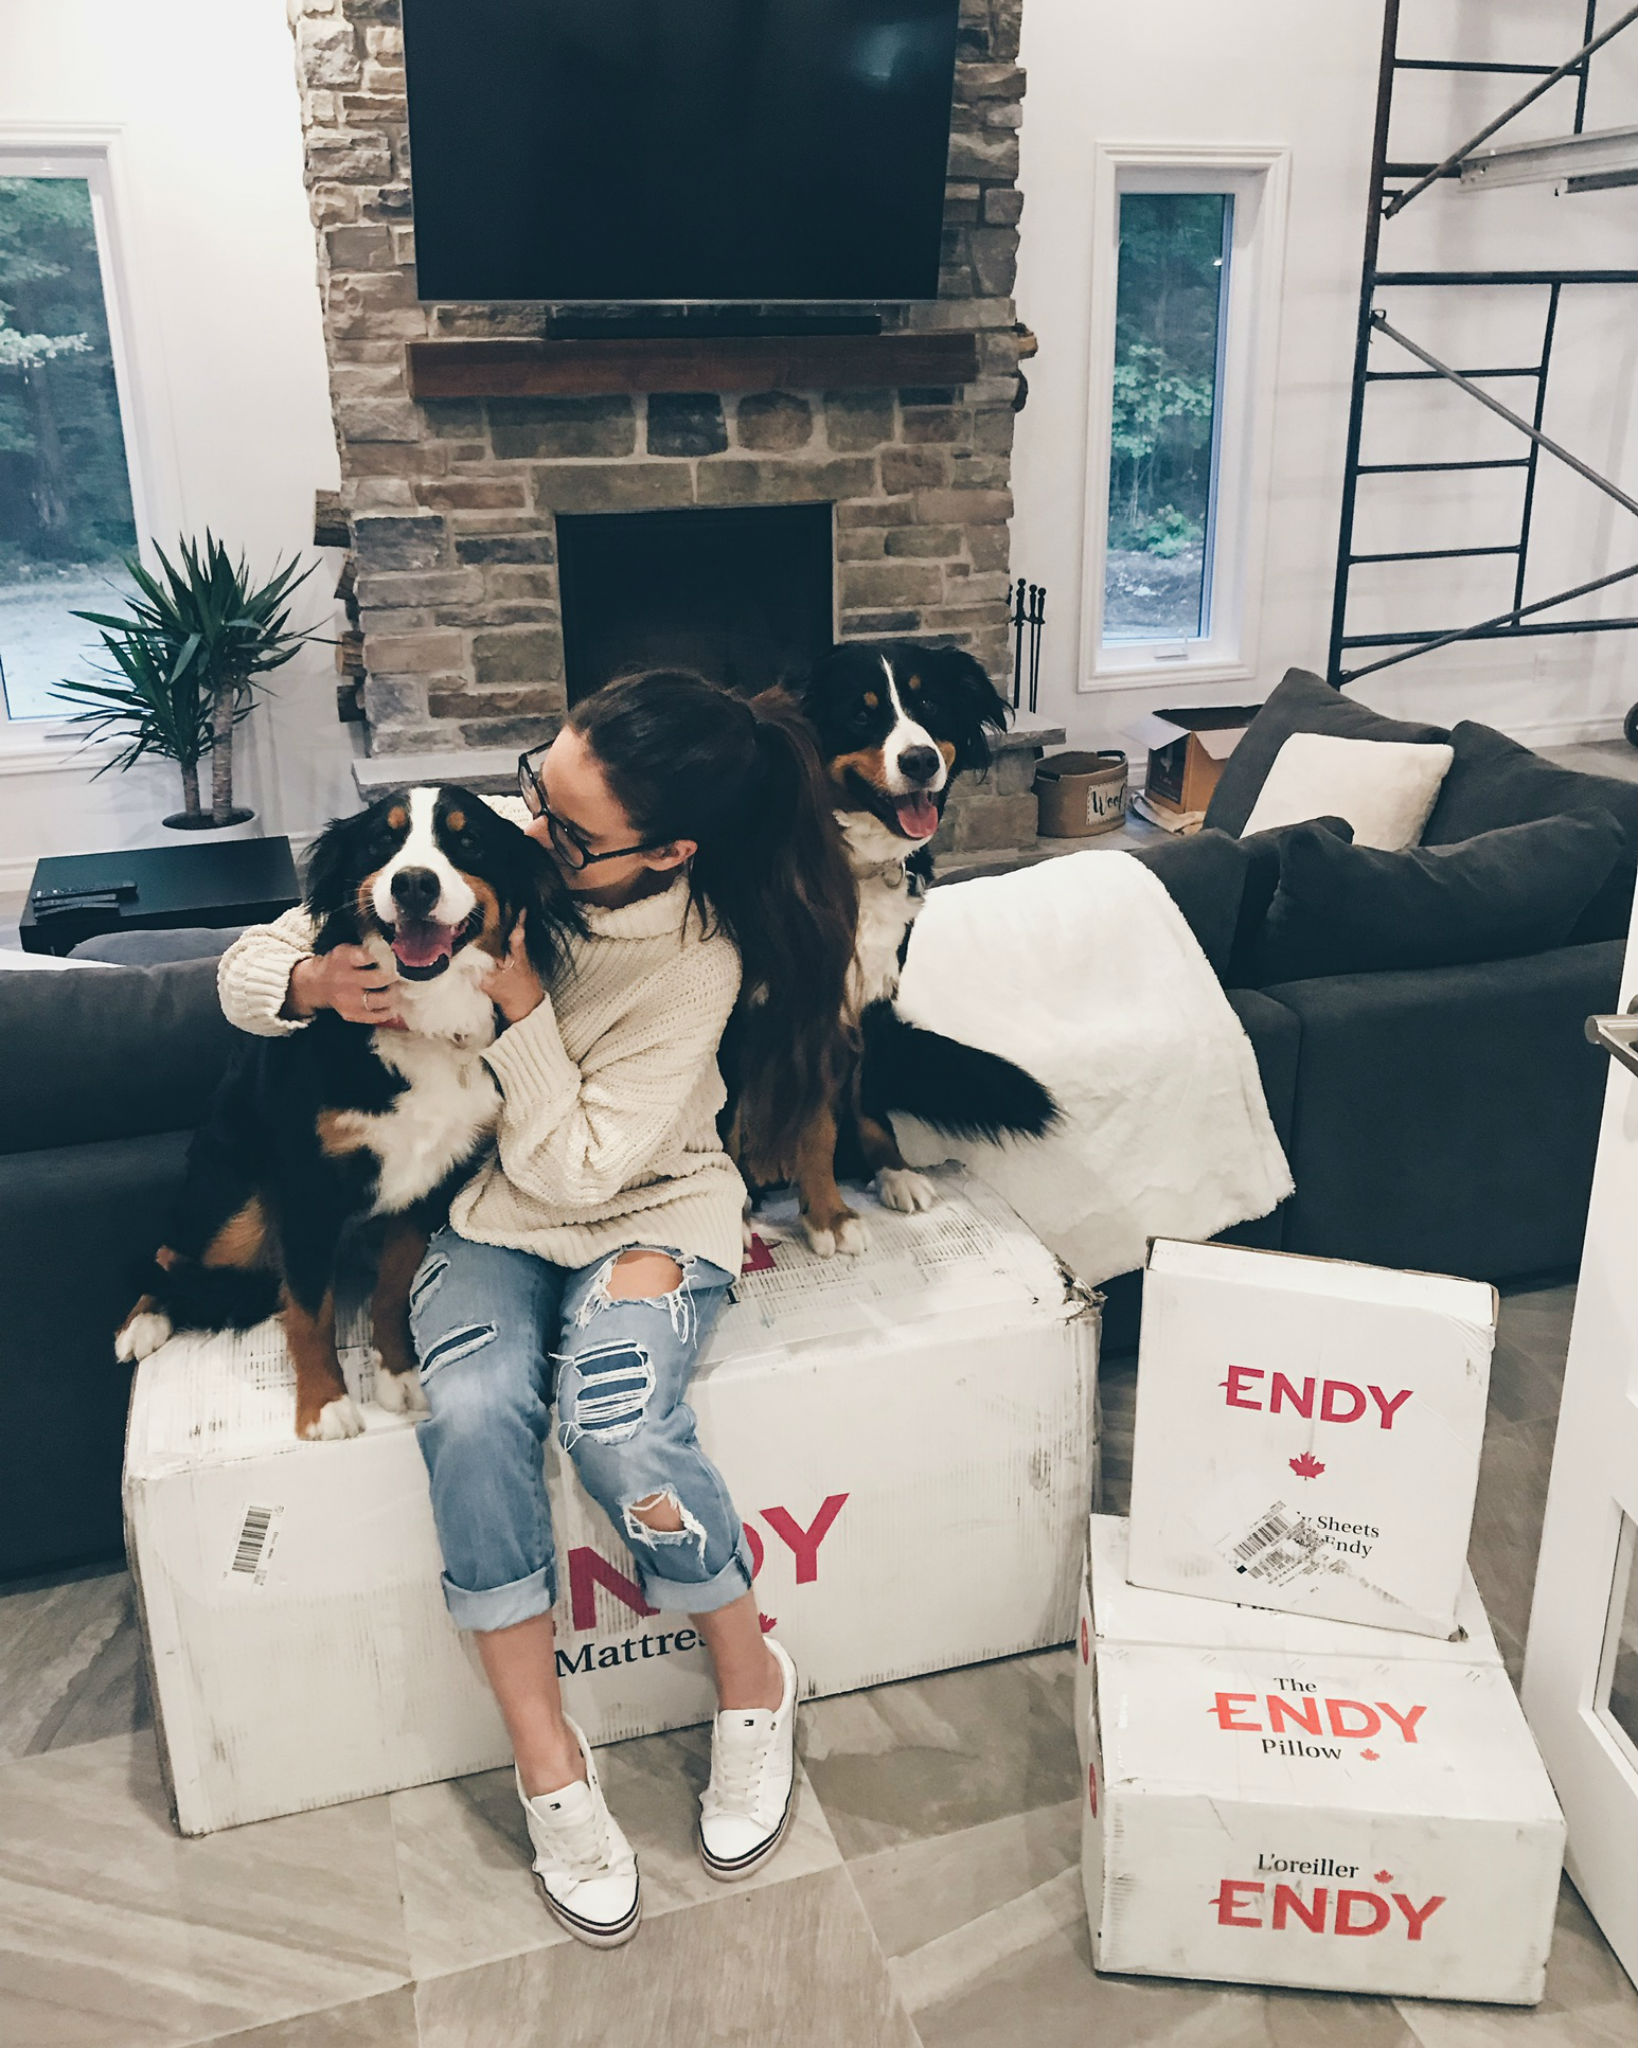 "Kim Demers (@kim_demers) - Demers is a vlogger on YouTube from Montreal. Along with her great content, her three dogs, Zara, Zoey and Zachary, are showstoppers.""Tellement heureuse d'avoir ENFIN reçu mon lit king @endy. Moi qui avait des problèmes de sommeil dernièrement, je vous confirme que je dort comme un bébé maintenant 👶🏻 #gifted #endypartner"""